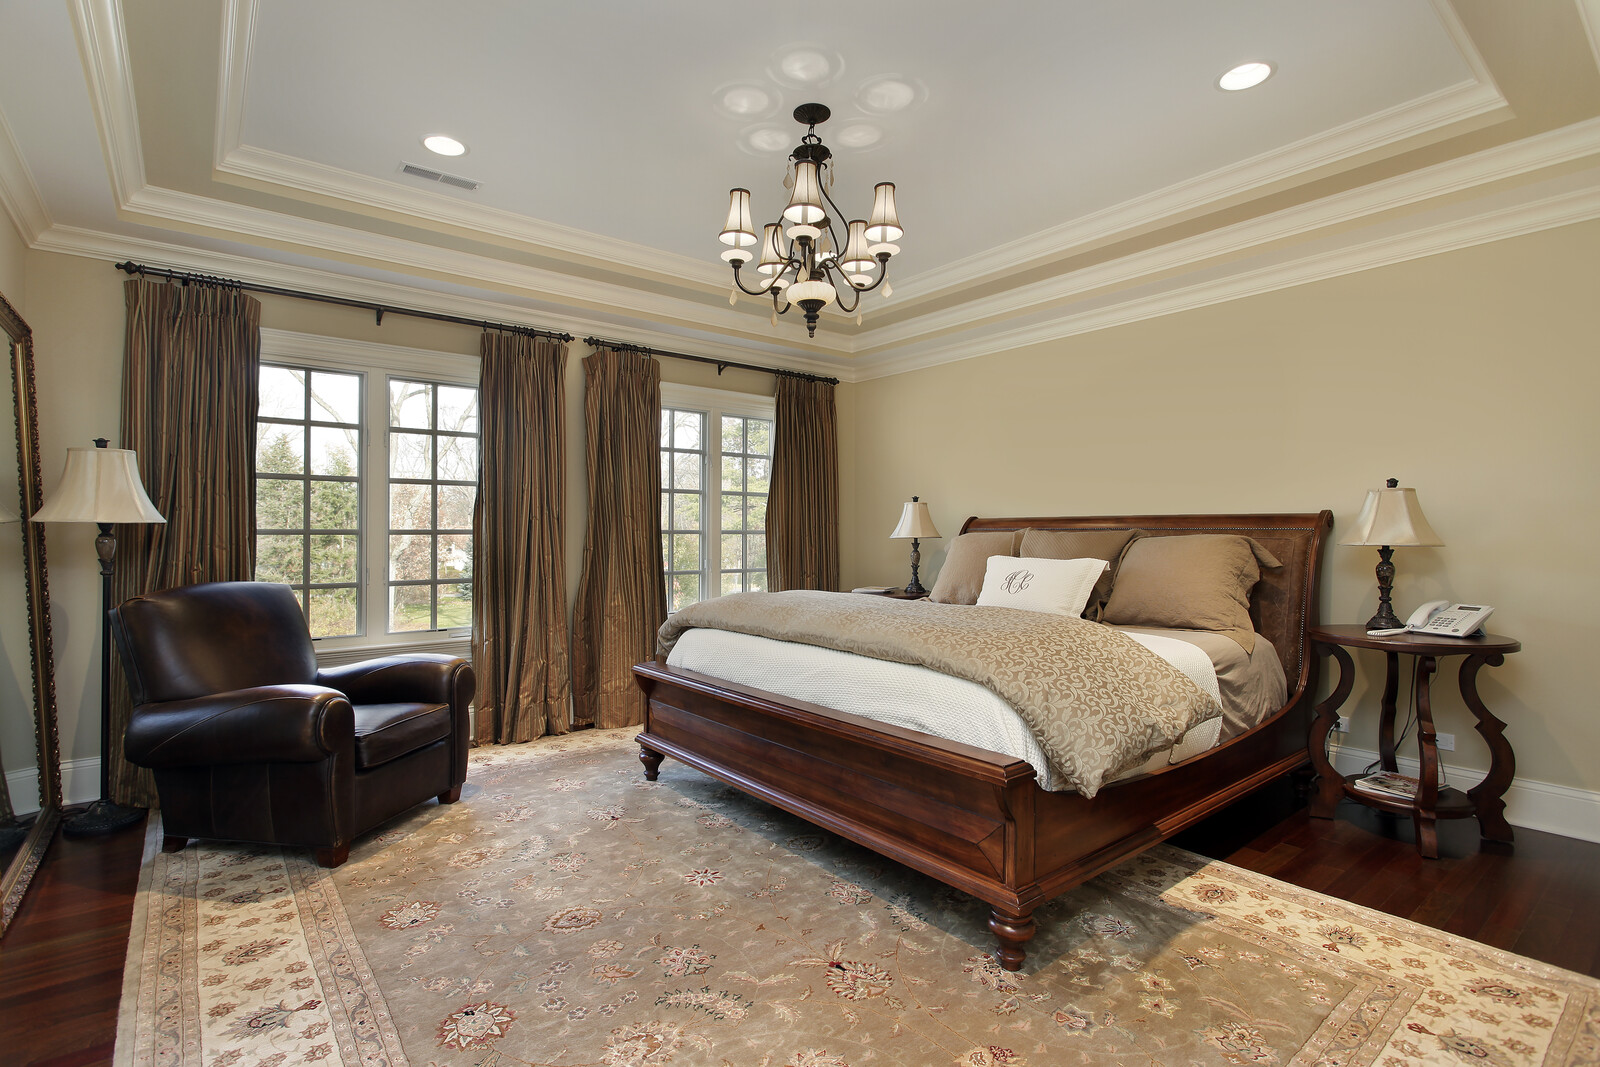 Elegant bedroom with sleigh bed and large windows with nightstands with lamps and a telephone